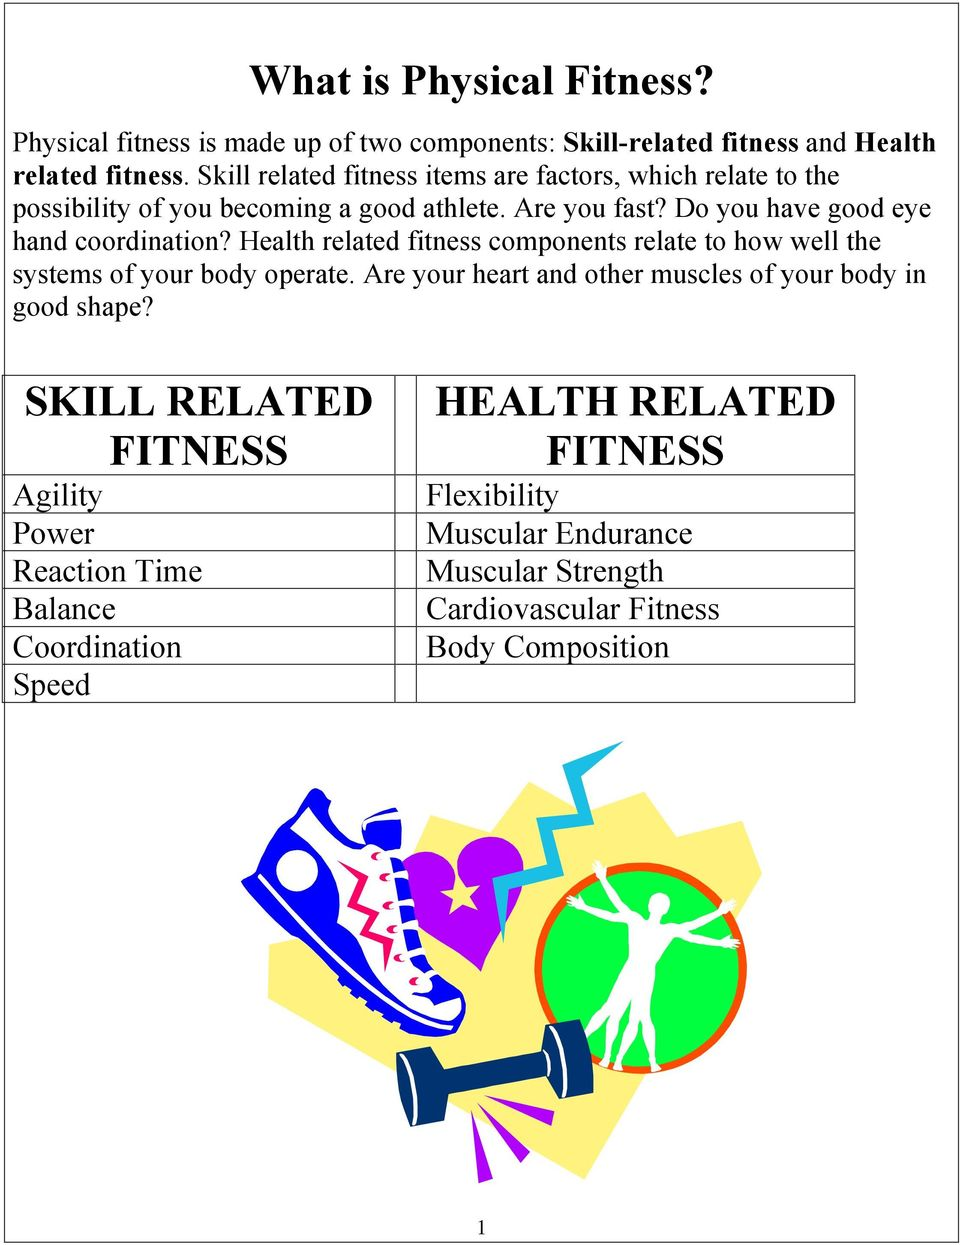 Do you have good eye hand coordination? Health related fitness components relate to how well the systems of your body operate.